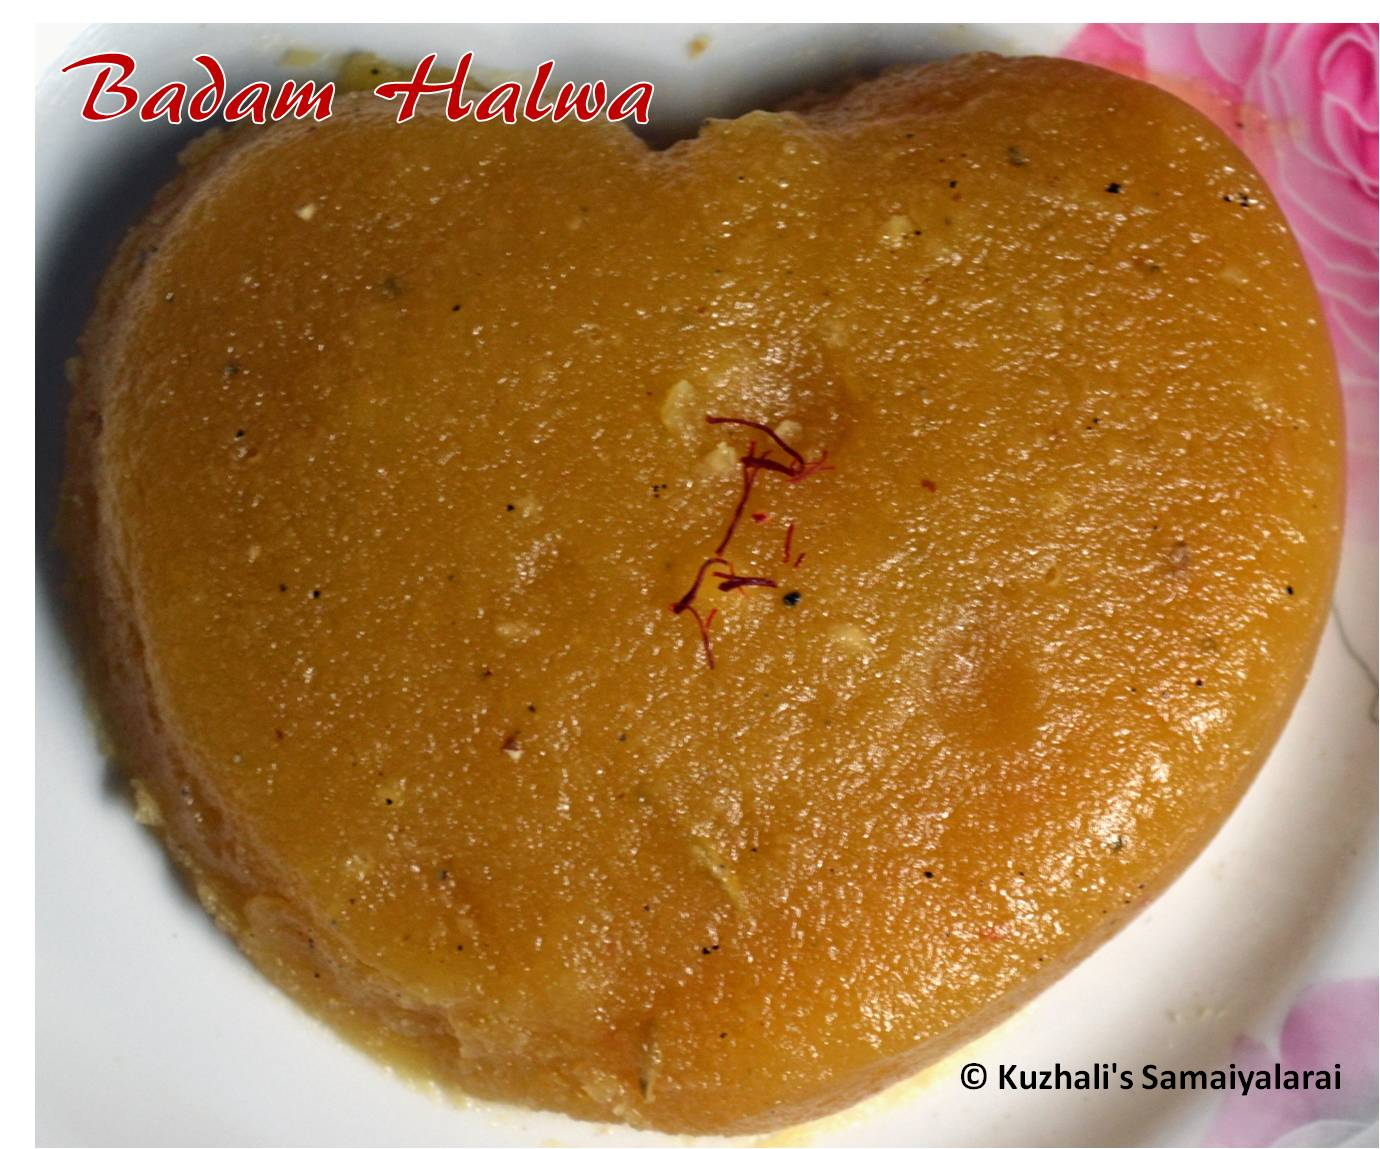 http://www.kuzhalisamaiyalarai.in/2017/05/badam-halwaalmond-halwa-recipe-how-to.html